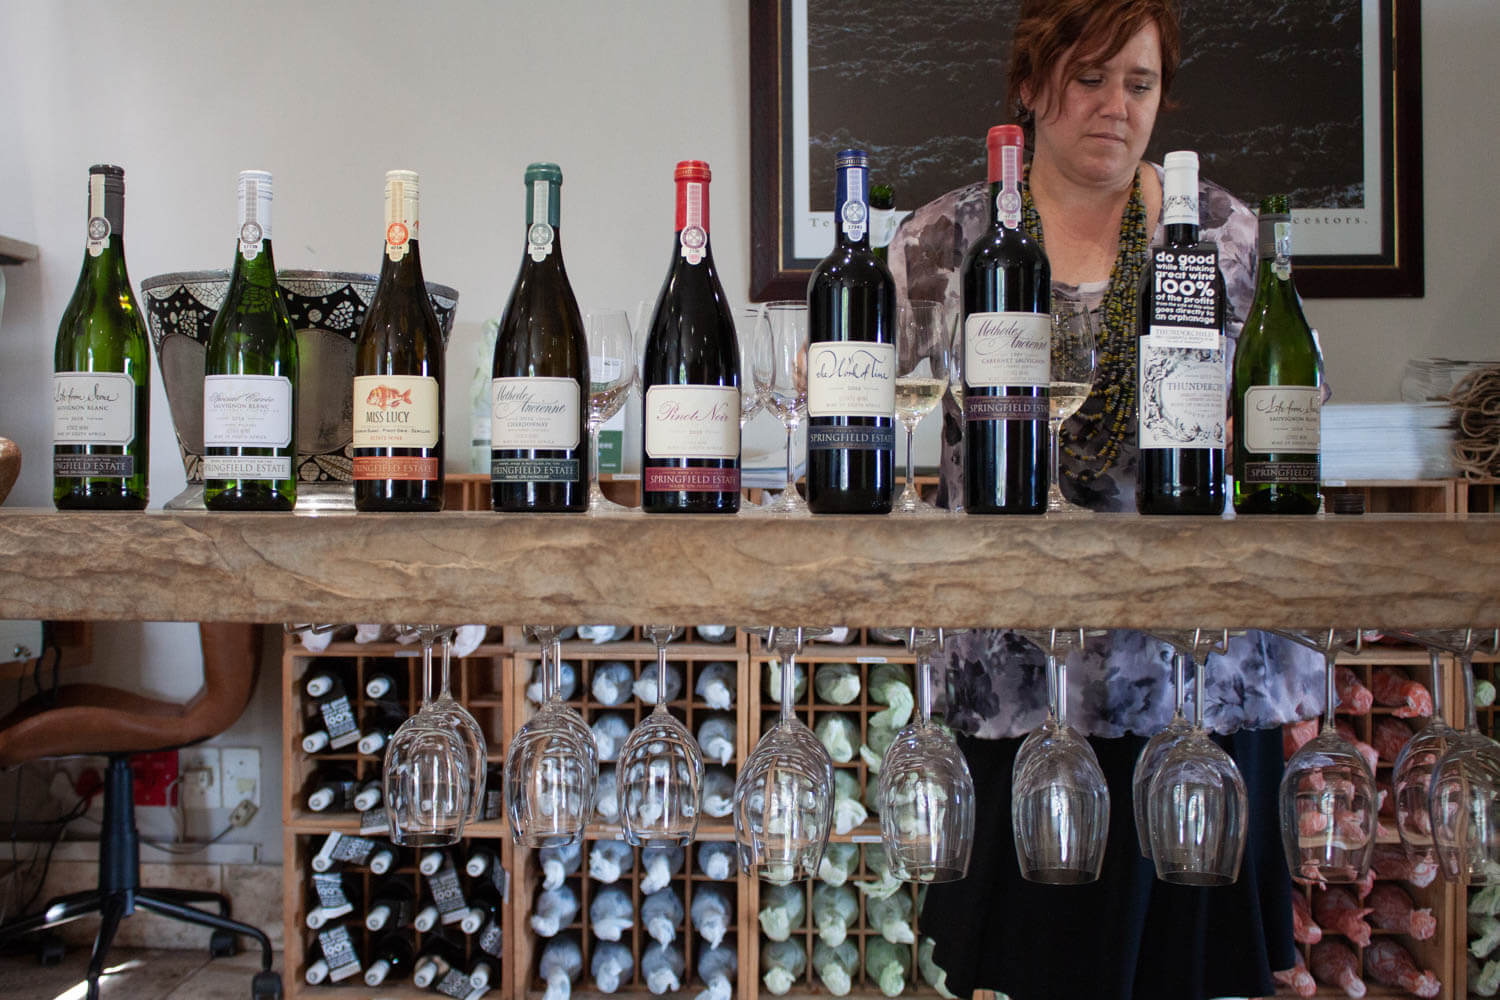 Wines to taste at Springfield Wine Estate